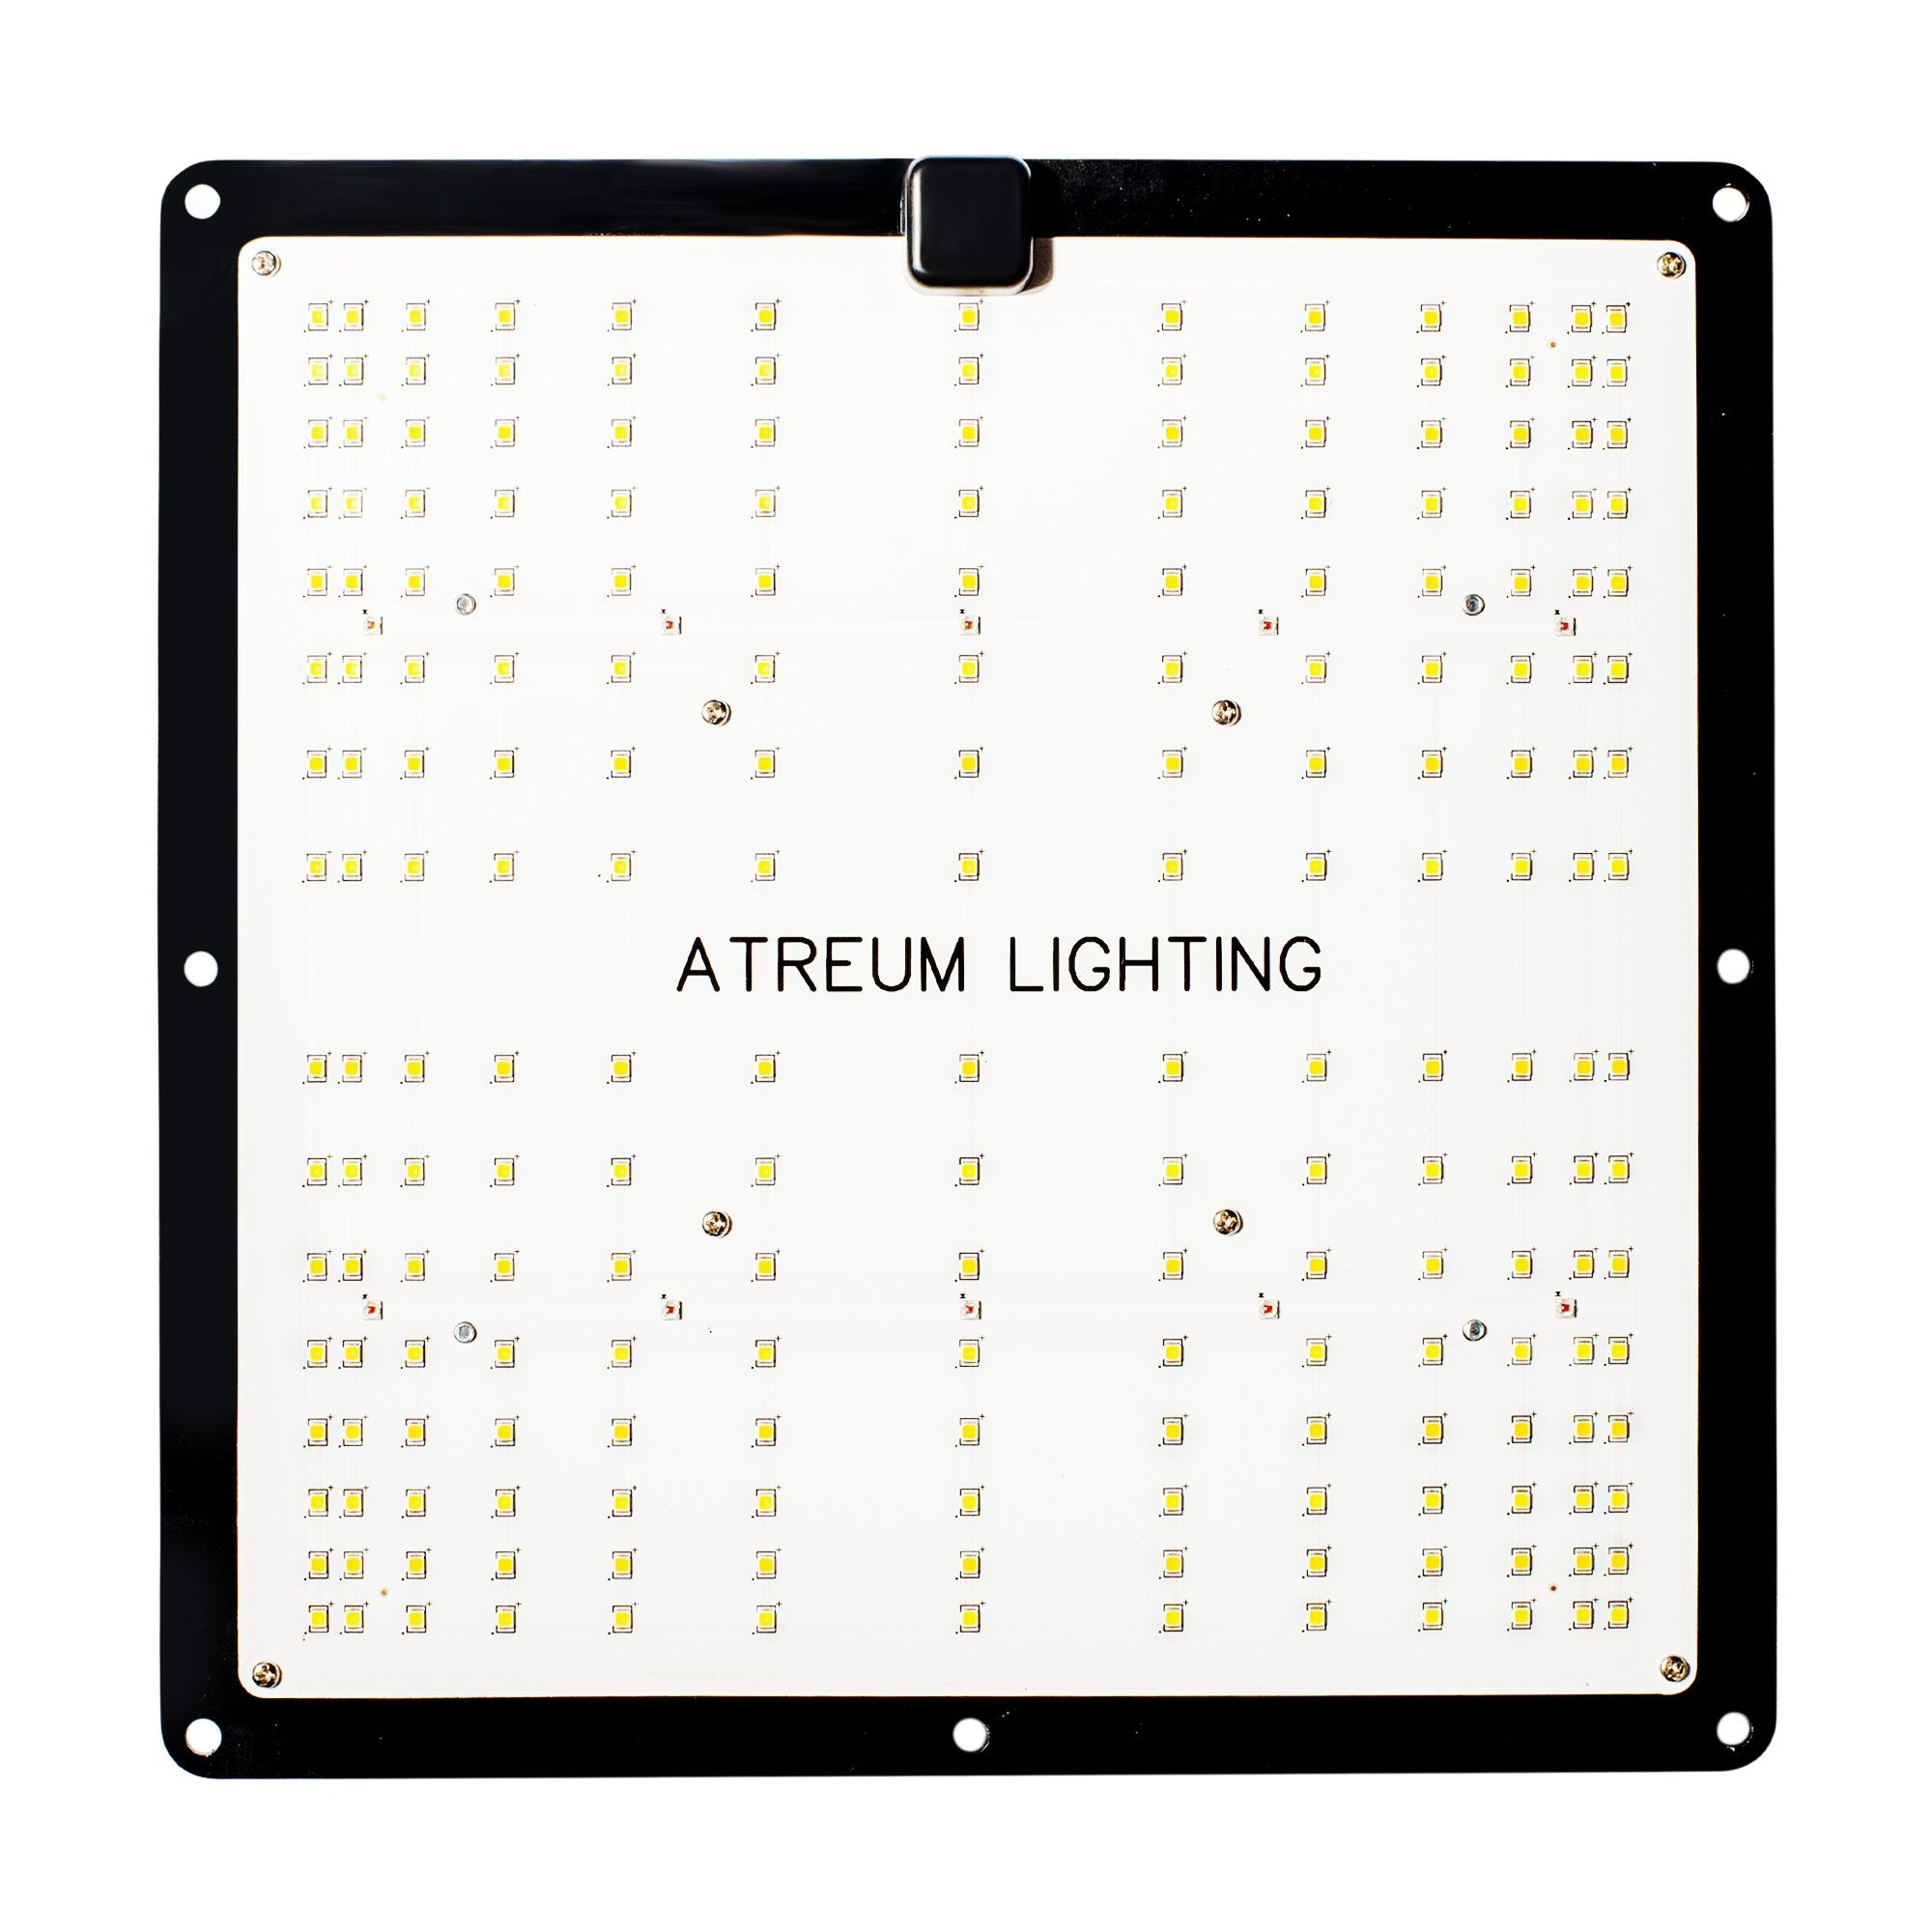 HYDRA-1000 LED Grow Light, 100W - Atreum Lighting